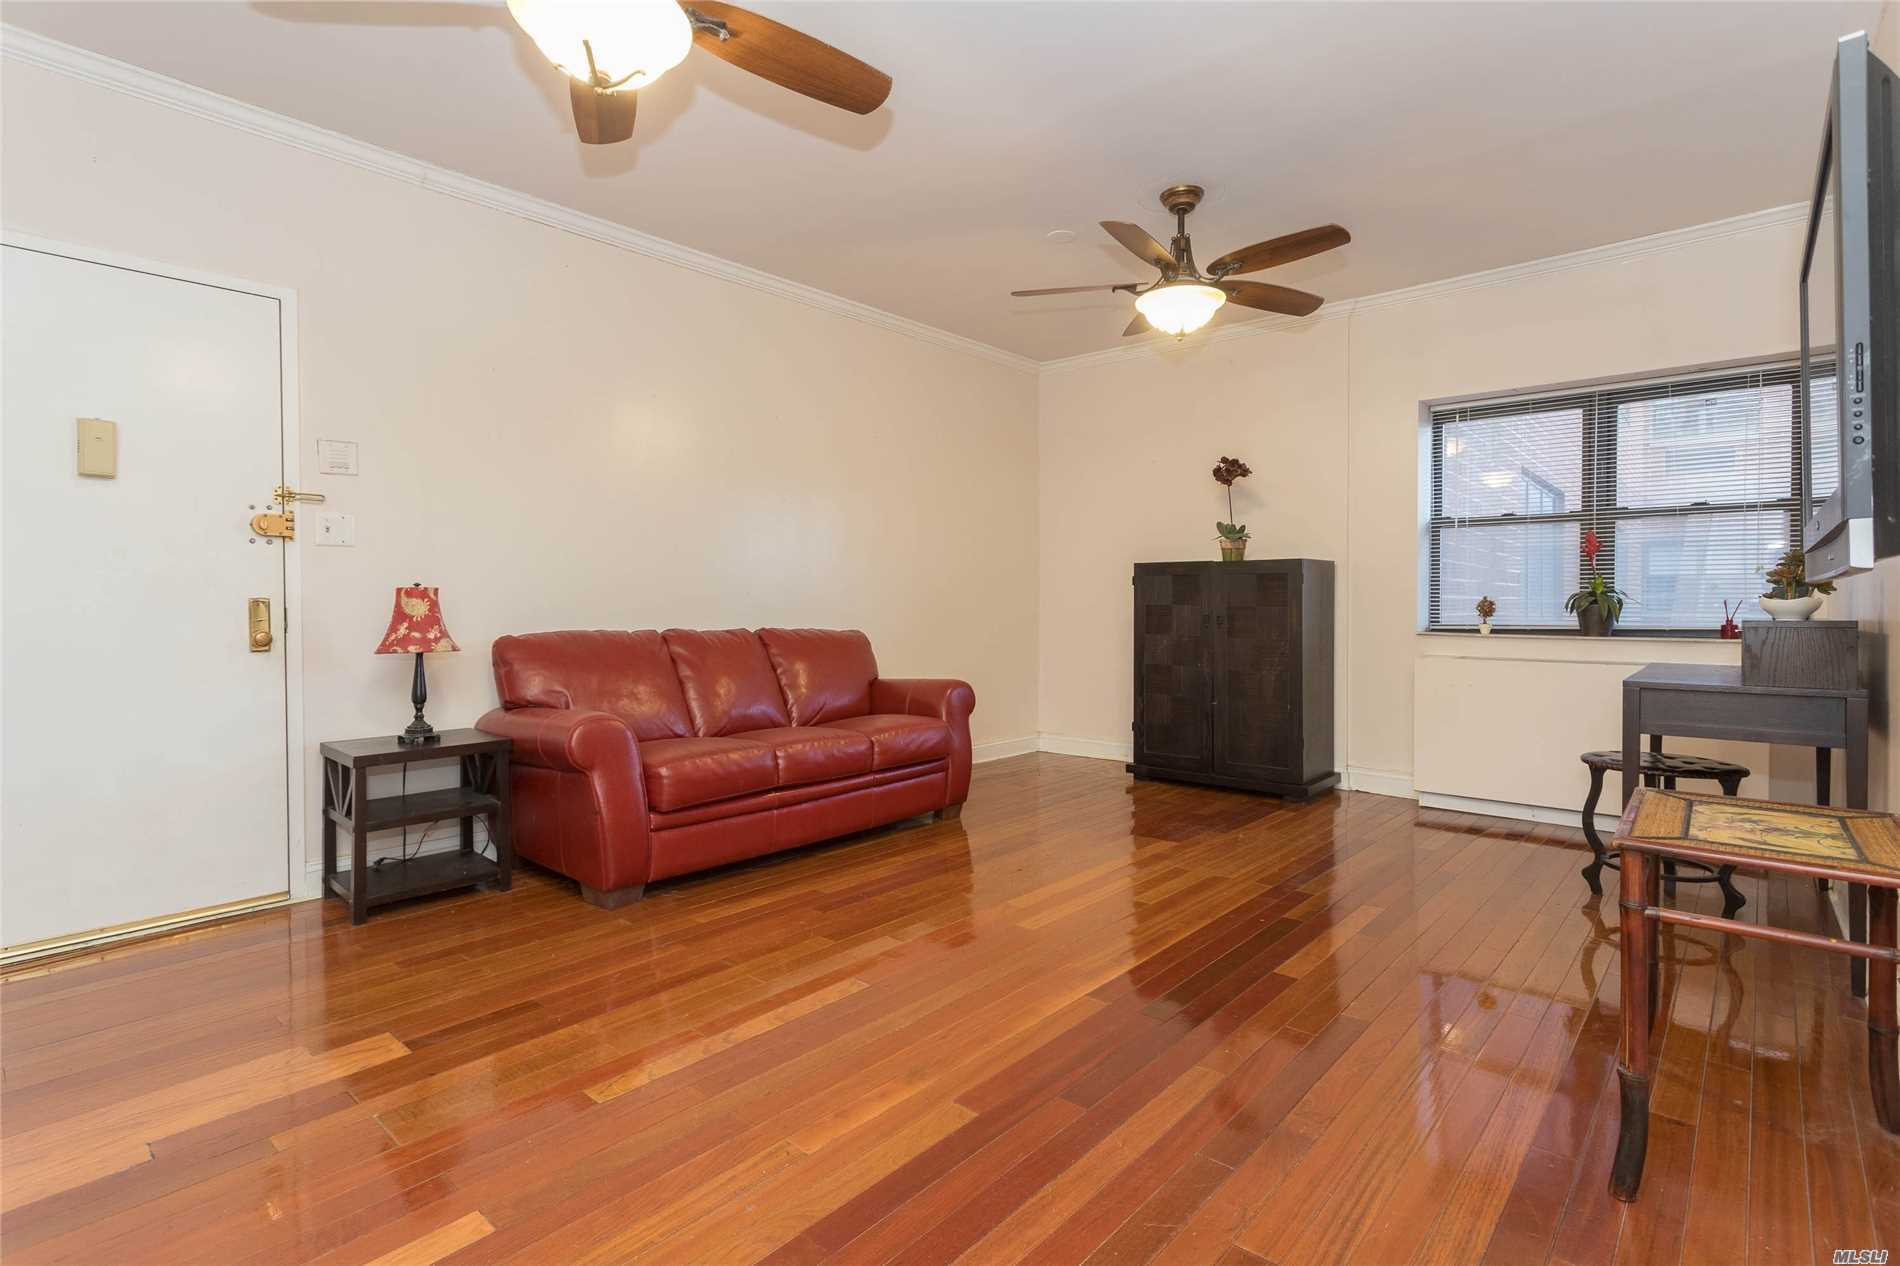 Spacious 2Br, 2 Bath Condo In Austin Towers In Rego Park. Short Walk To The R Train, Spacious 2Br Condo With 2 Full Bathrooms. Deeded Parking Included And Easy Access Queens Blvd, Lie And Woodhaven Blvd. Laundry In Unit And Pet Friendly With Approval. No Fee For Subletting. Great Investment Opportunity Or For Owner Occupancy.